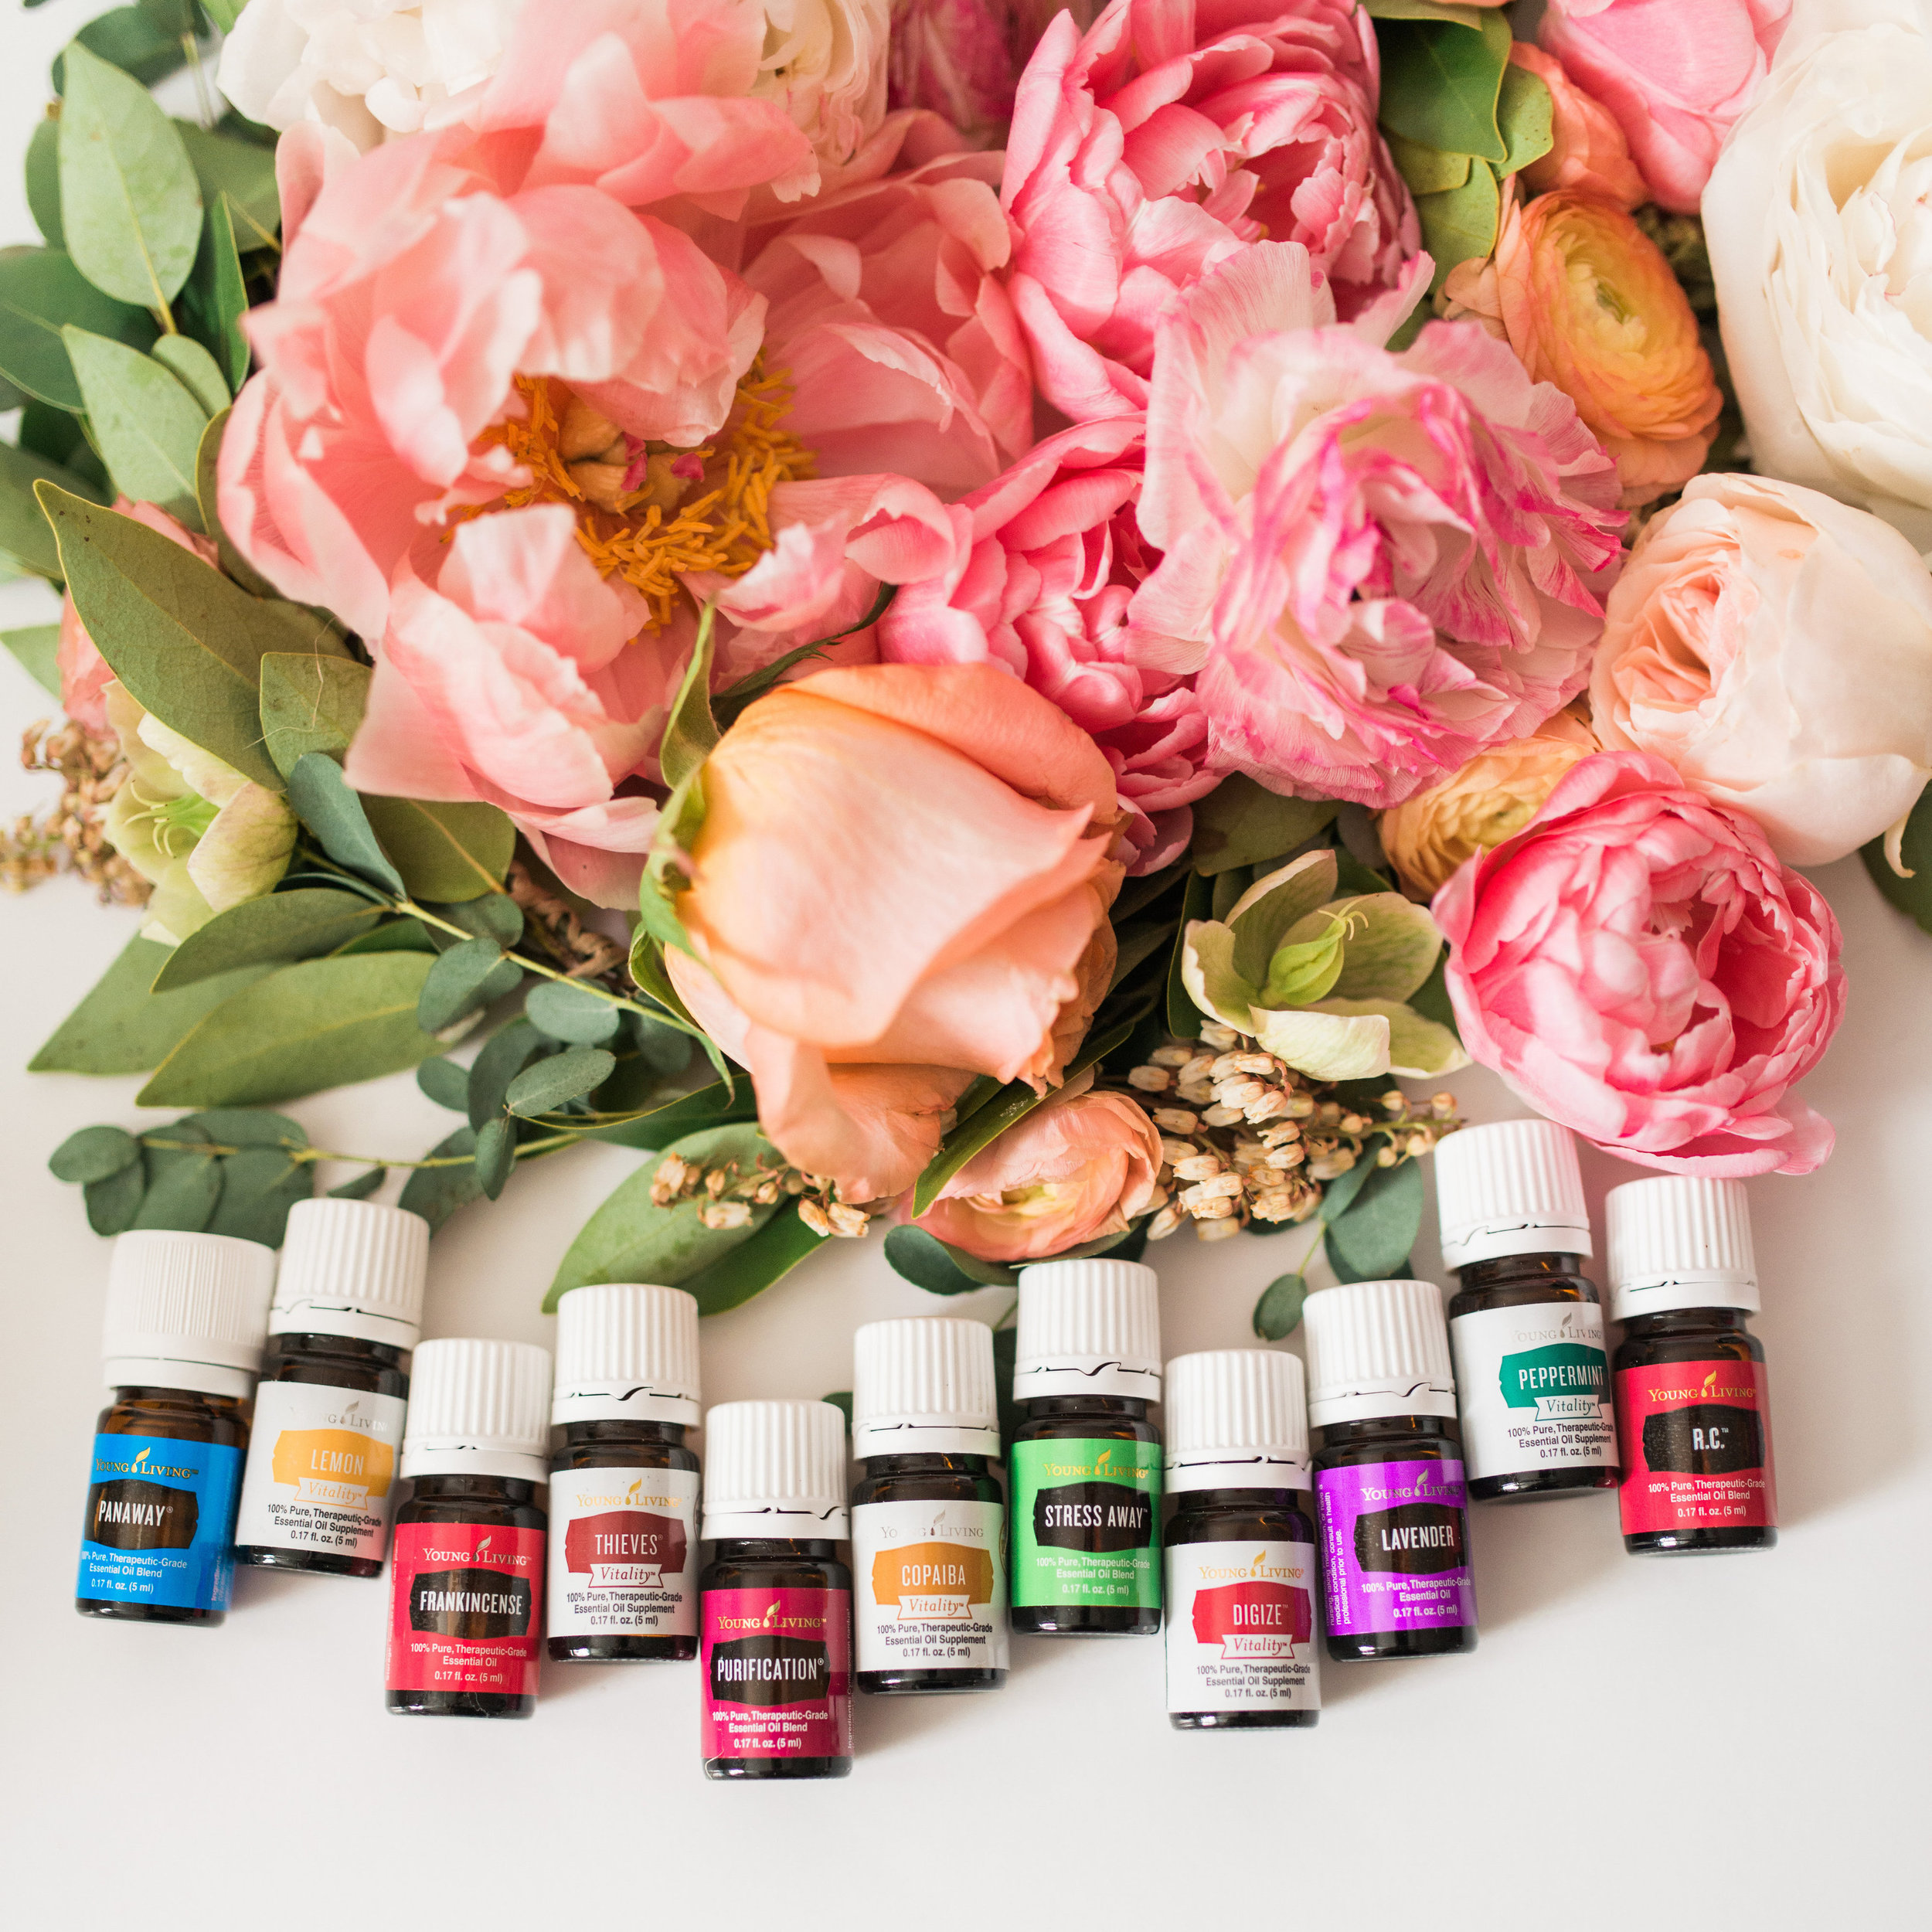 Why Young Living? What are the reasons I chose them over another brand? And why I decided to take the plundge and build a powerful wellness business with them?  - Read more here...